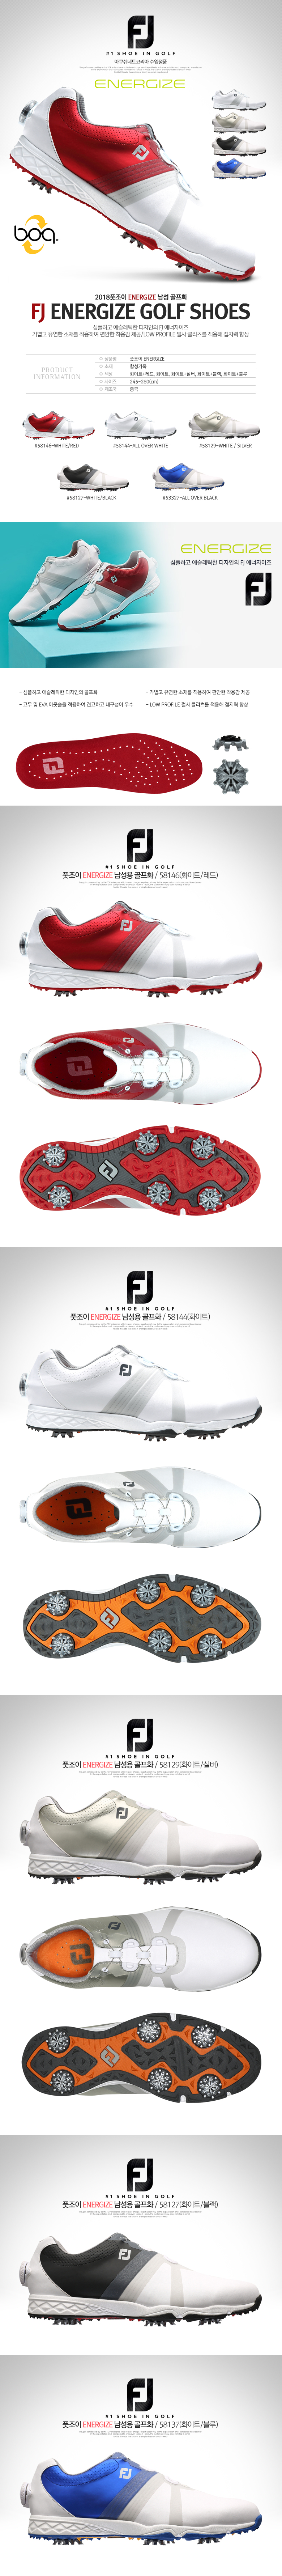 fj_18energize_shoes.jpg